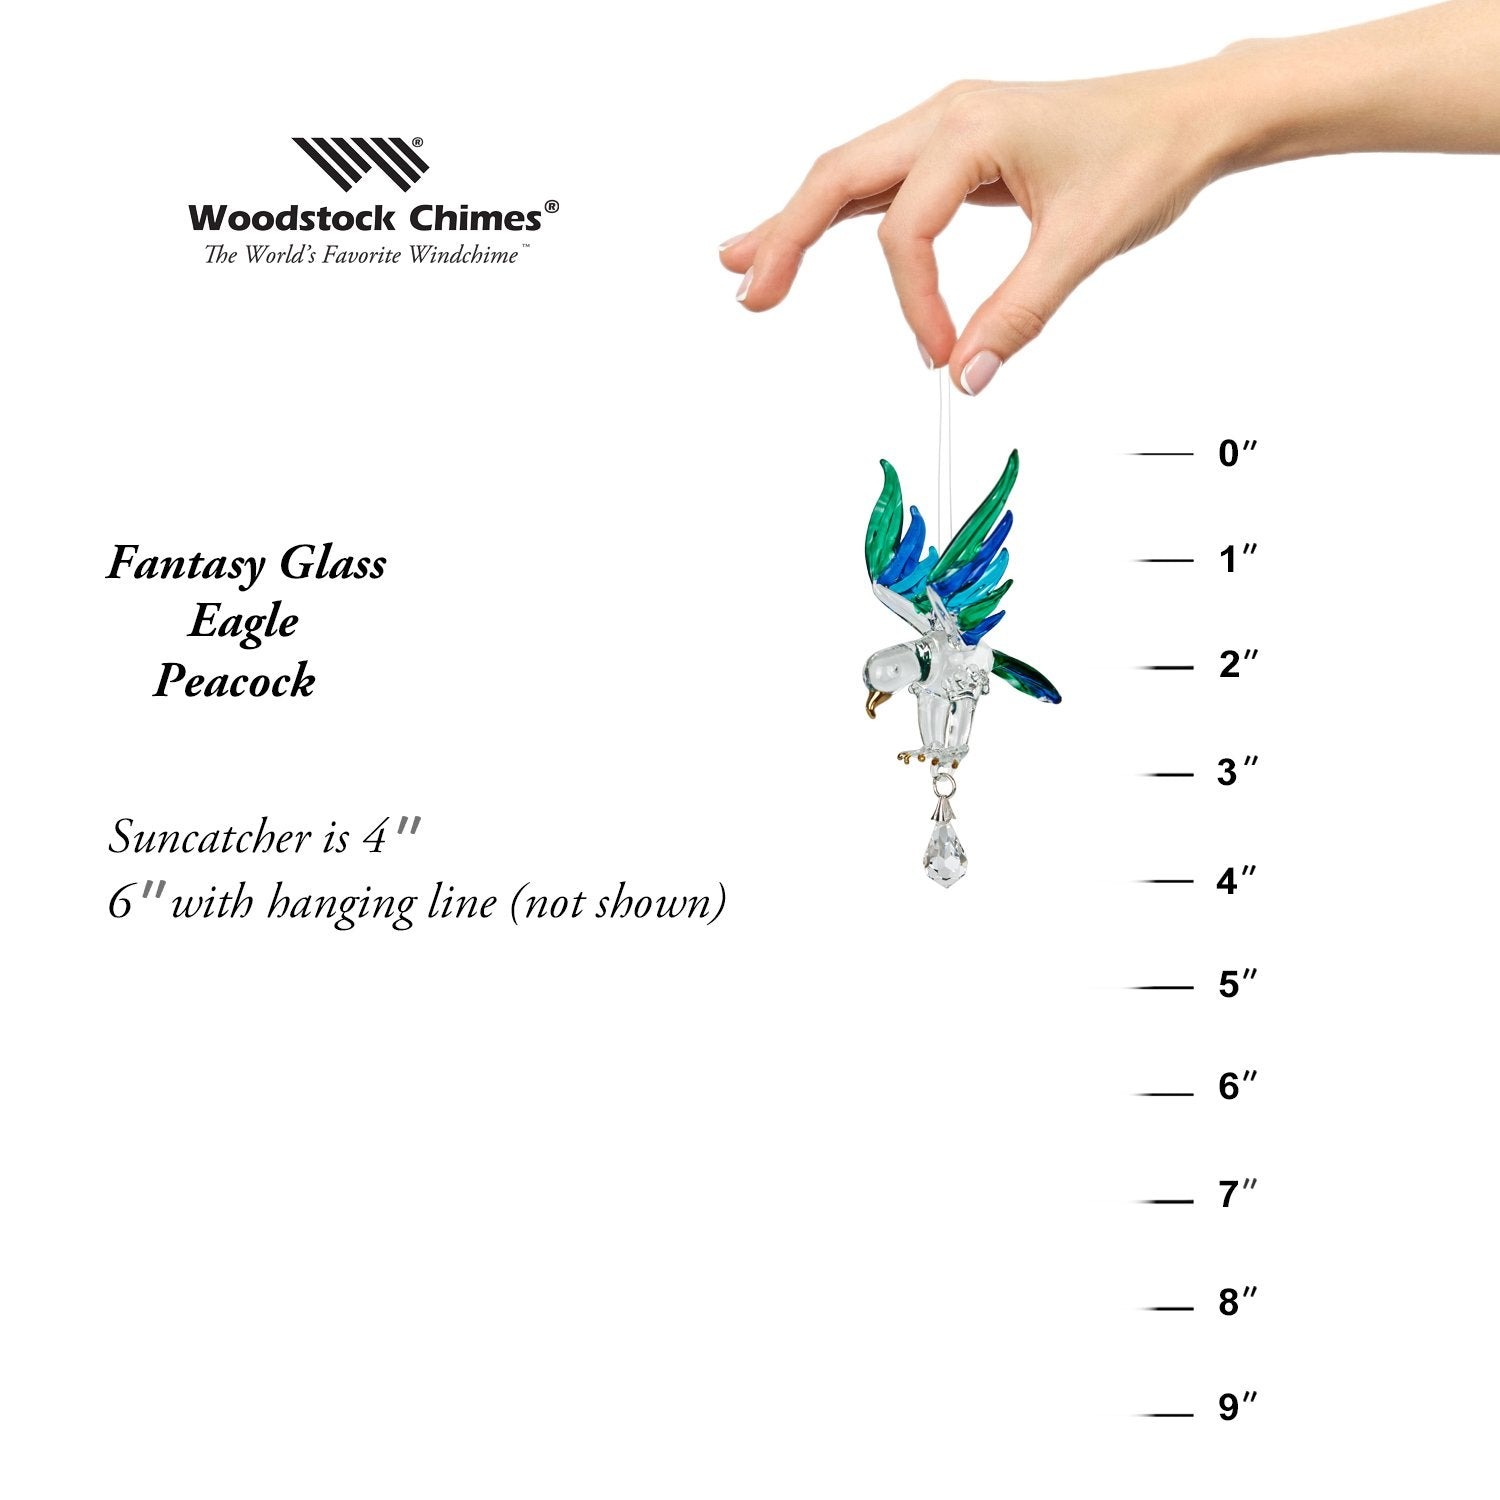 Fantasy Glass Suncatcher - Eagle, Peacock proportion image